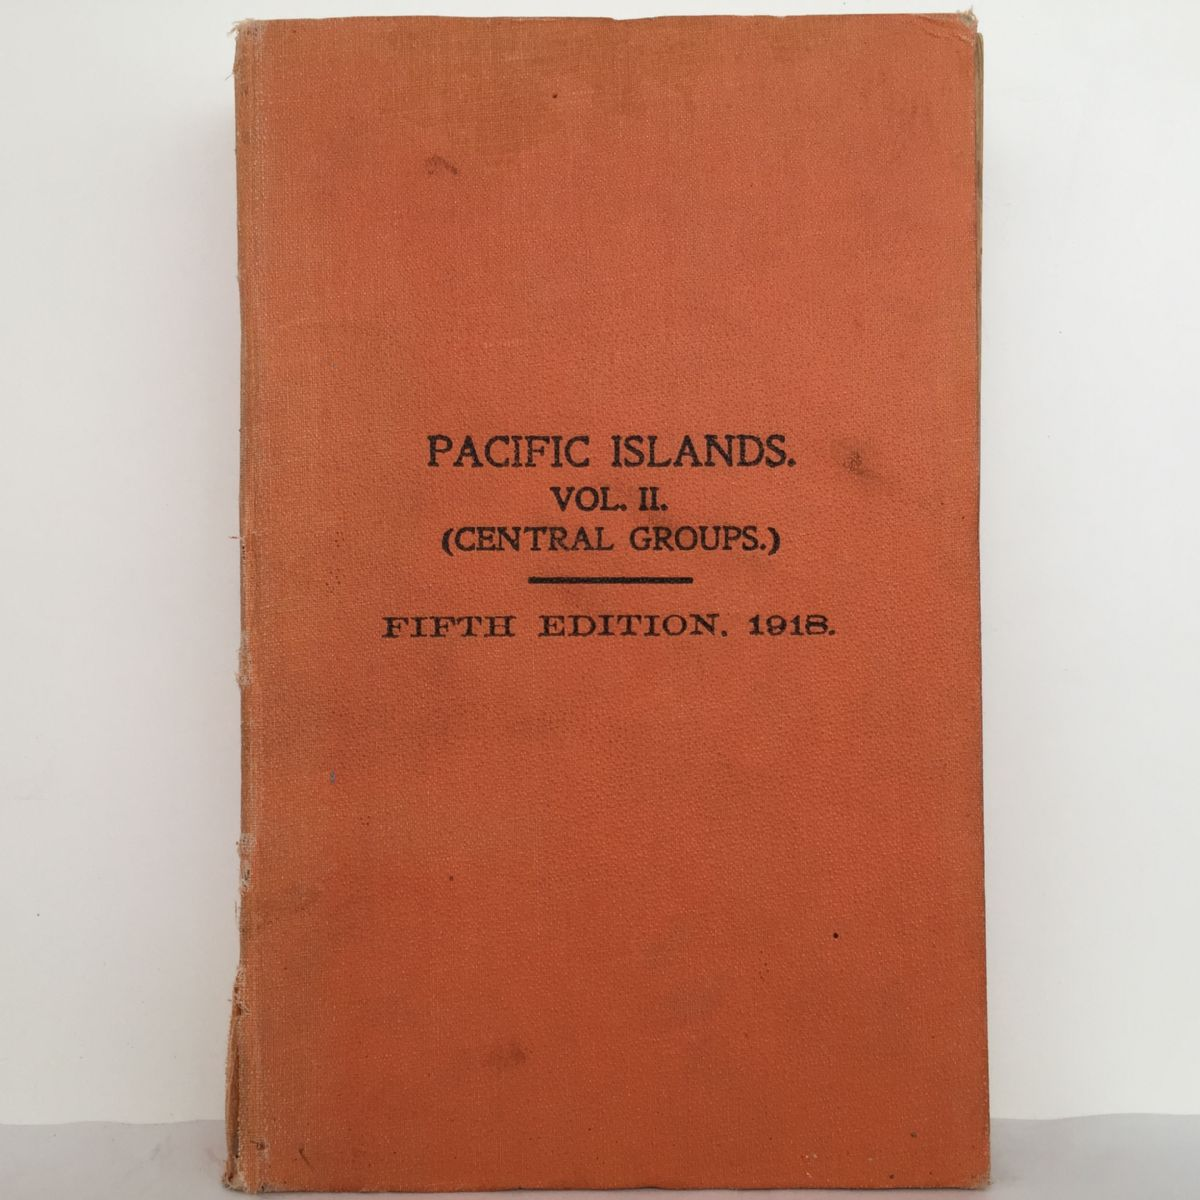 Pacific Islands Pilot Vol 2 (Central Groups) Fifth Edition 1918